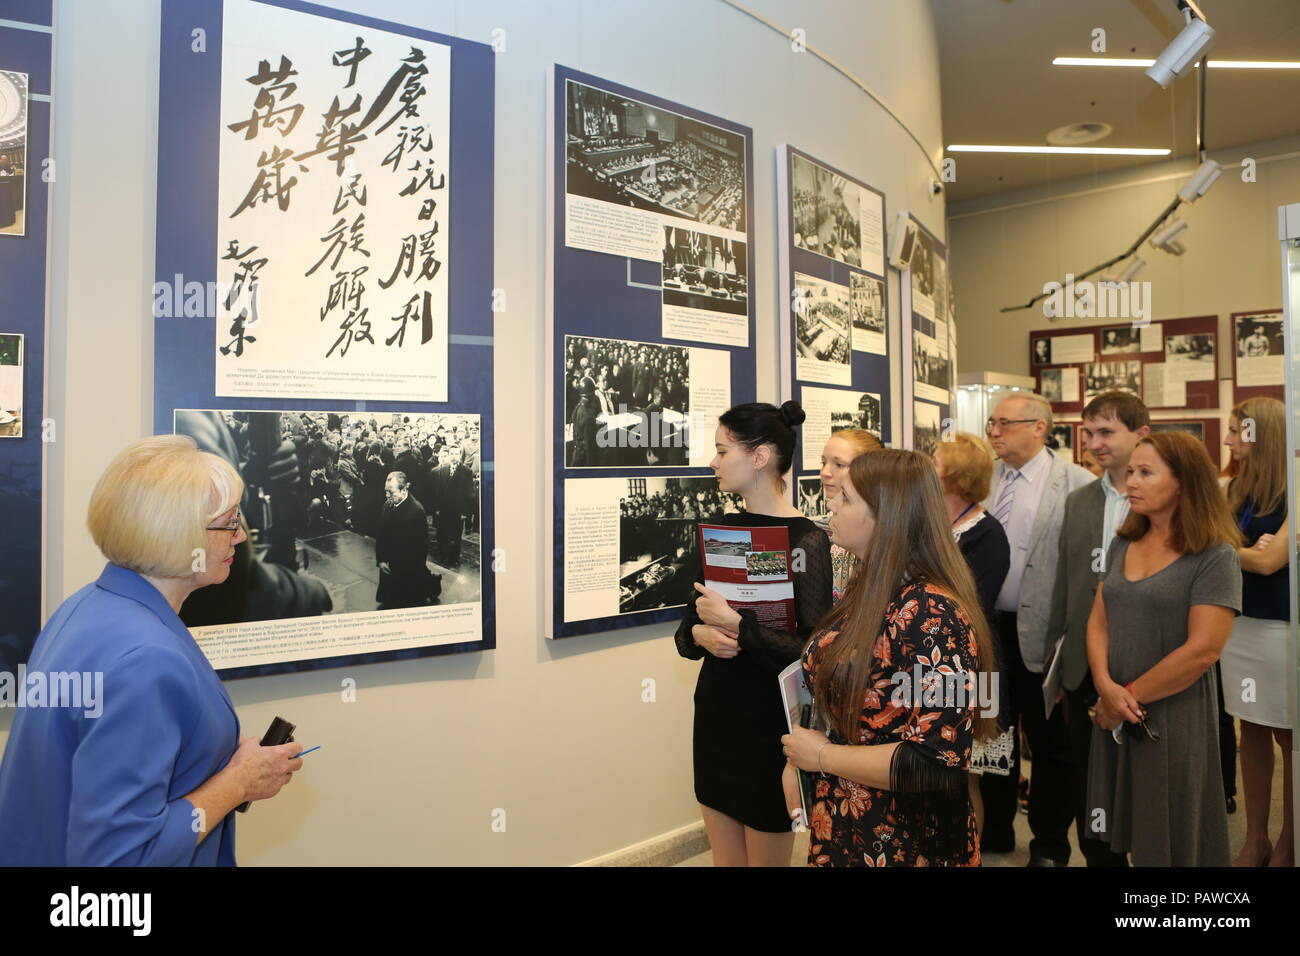 Minsk. 25th July, 2018. People visit 'The Main Eastern Battlefield' exhibition in Minsk, Belarus on July 25, 2018. The exhibition co-hosted by China and Belarus opened in Minsk on Wednesday. Themed on commemorating China's contribution for the victory of the World Anti-Fascist War, the exhibition offers more than 140 historical photos and other valuable historical relics. Credit: Wei Zhongjie/Xinhua/Alamy Live News - Stock Image